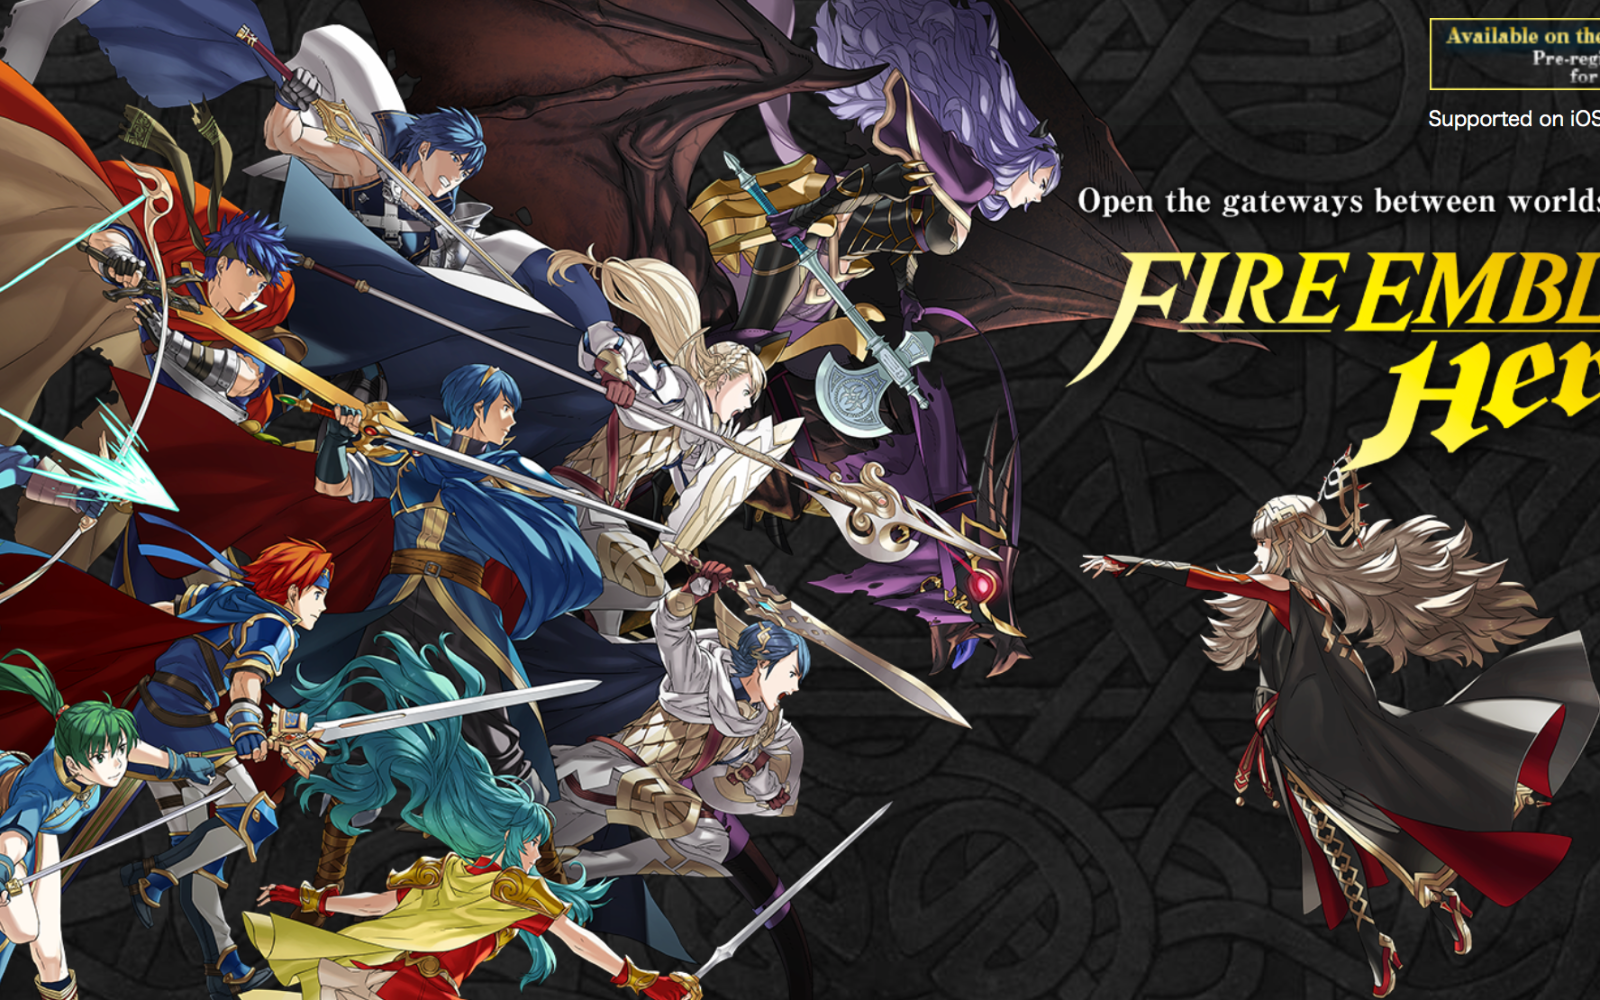 nintendo says new fire emblem heroes game coming to iphone and